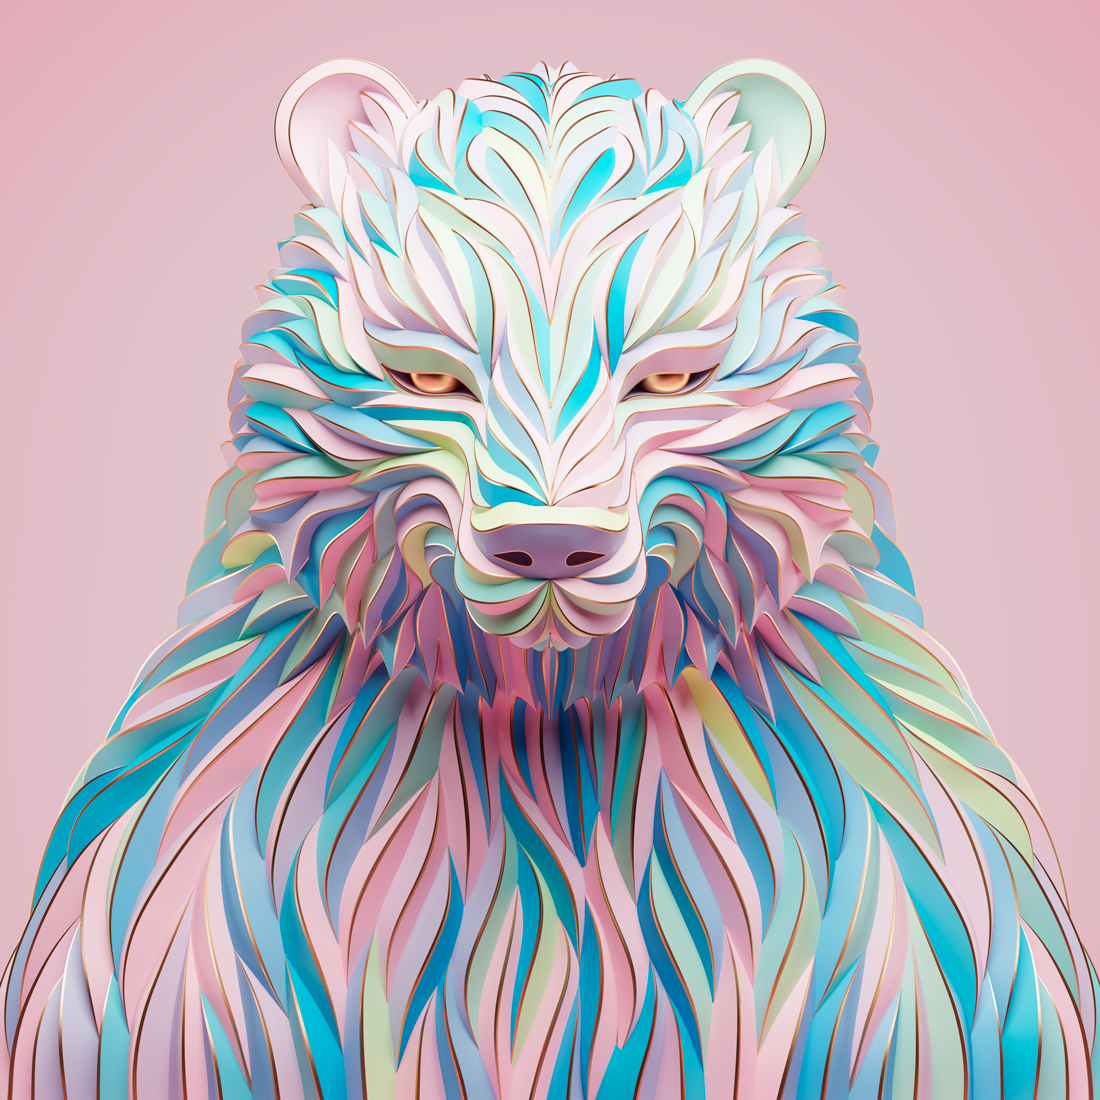 3D Animal Portraits by Maxim Shkret